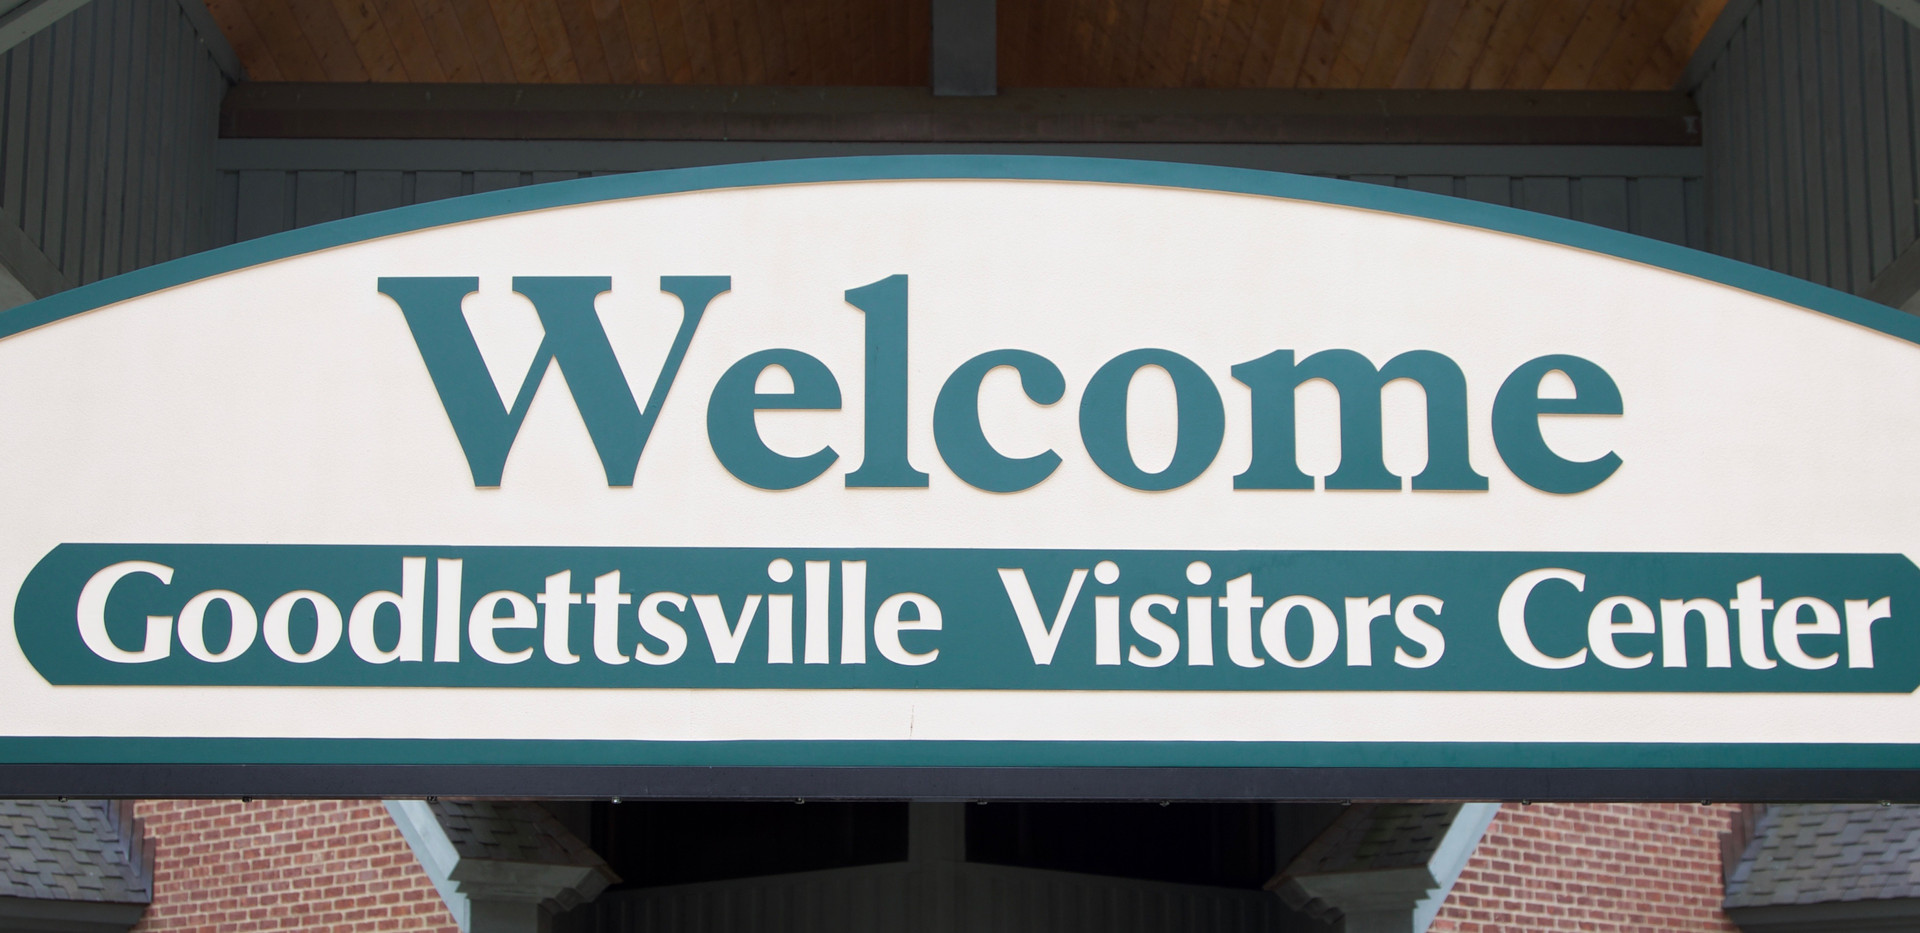 Goodlettsville Visitors Center, TN